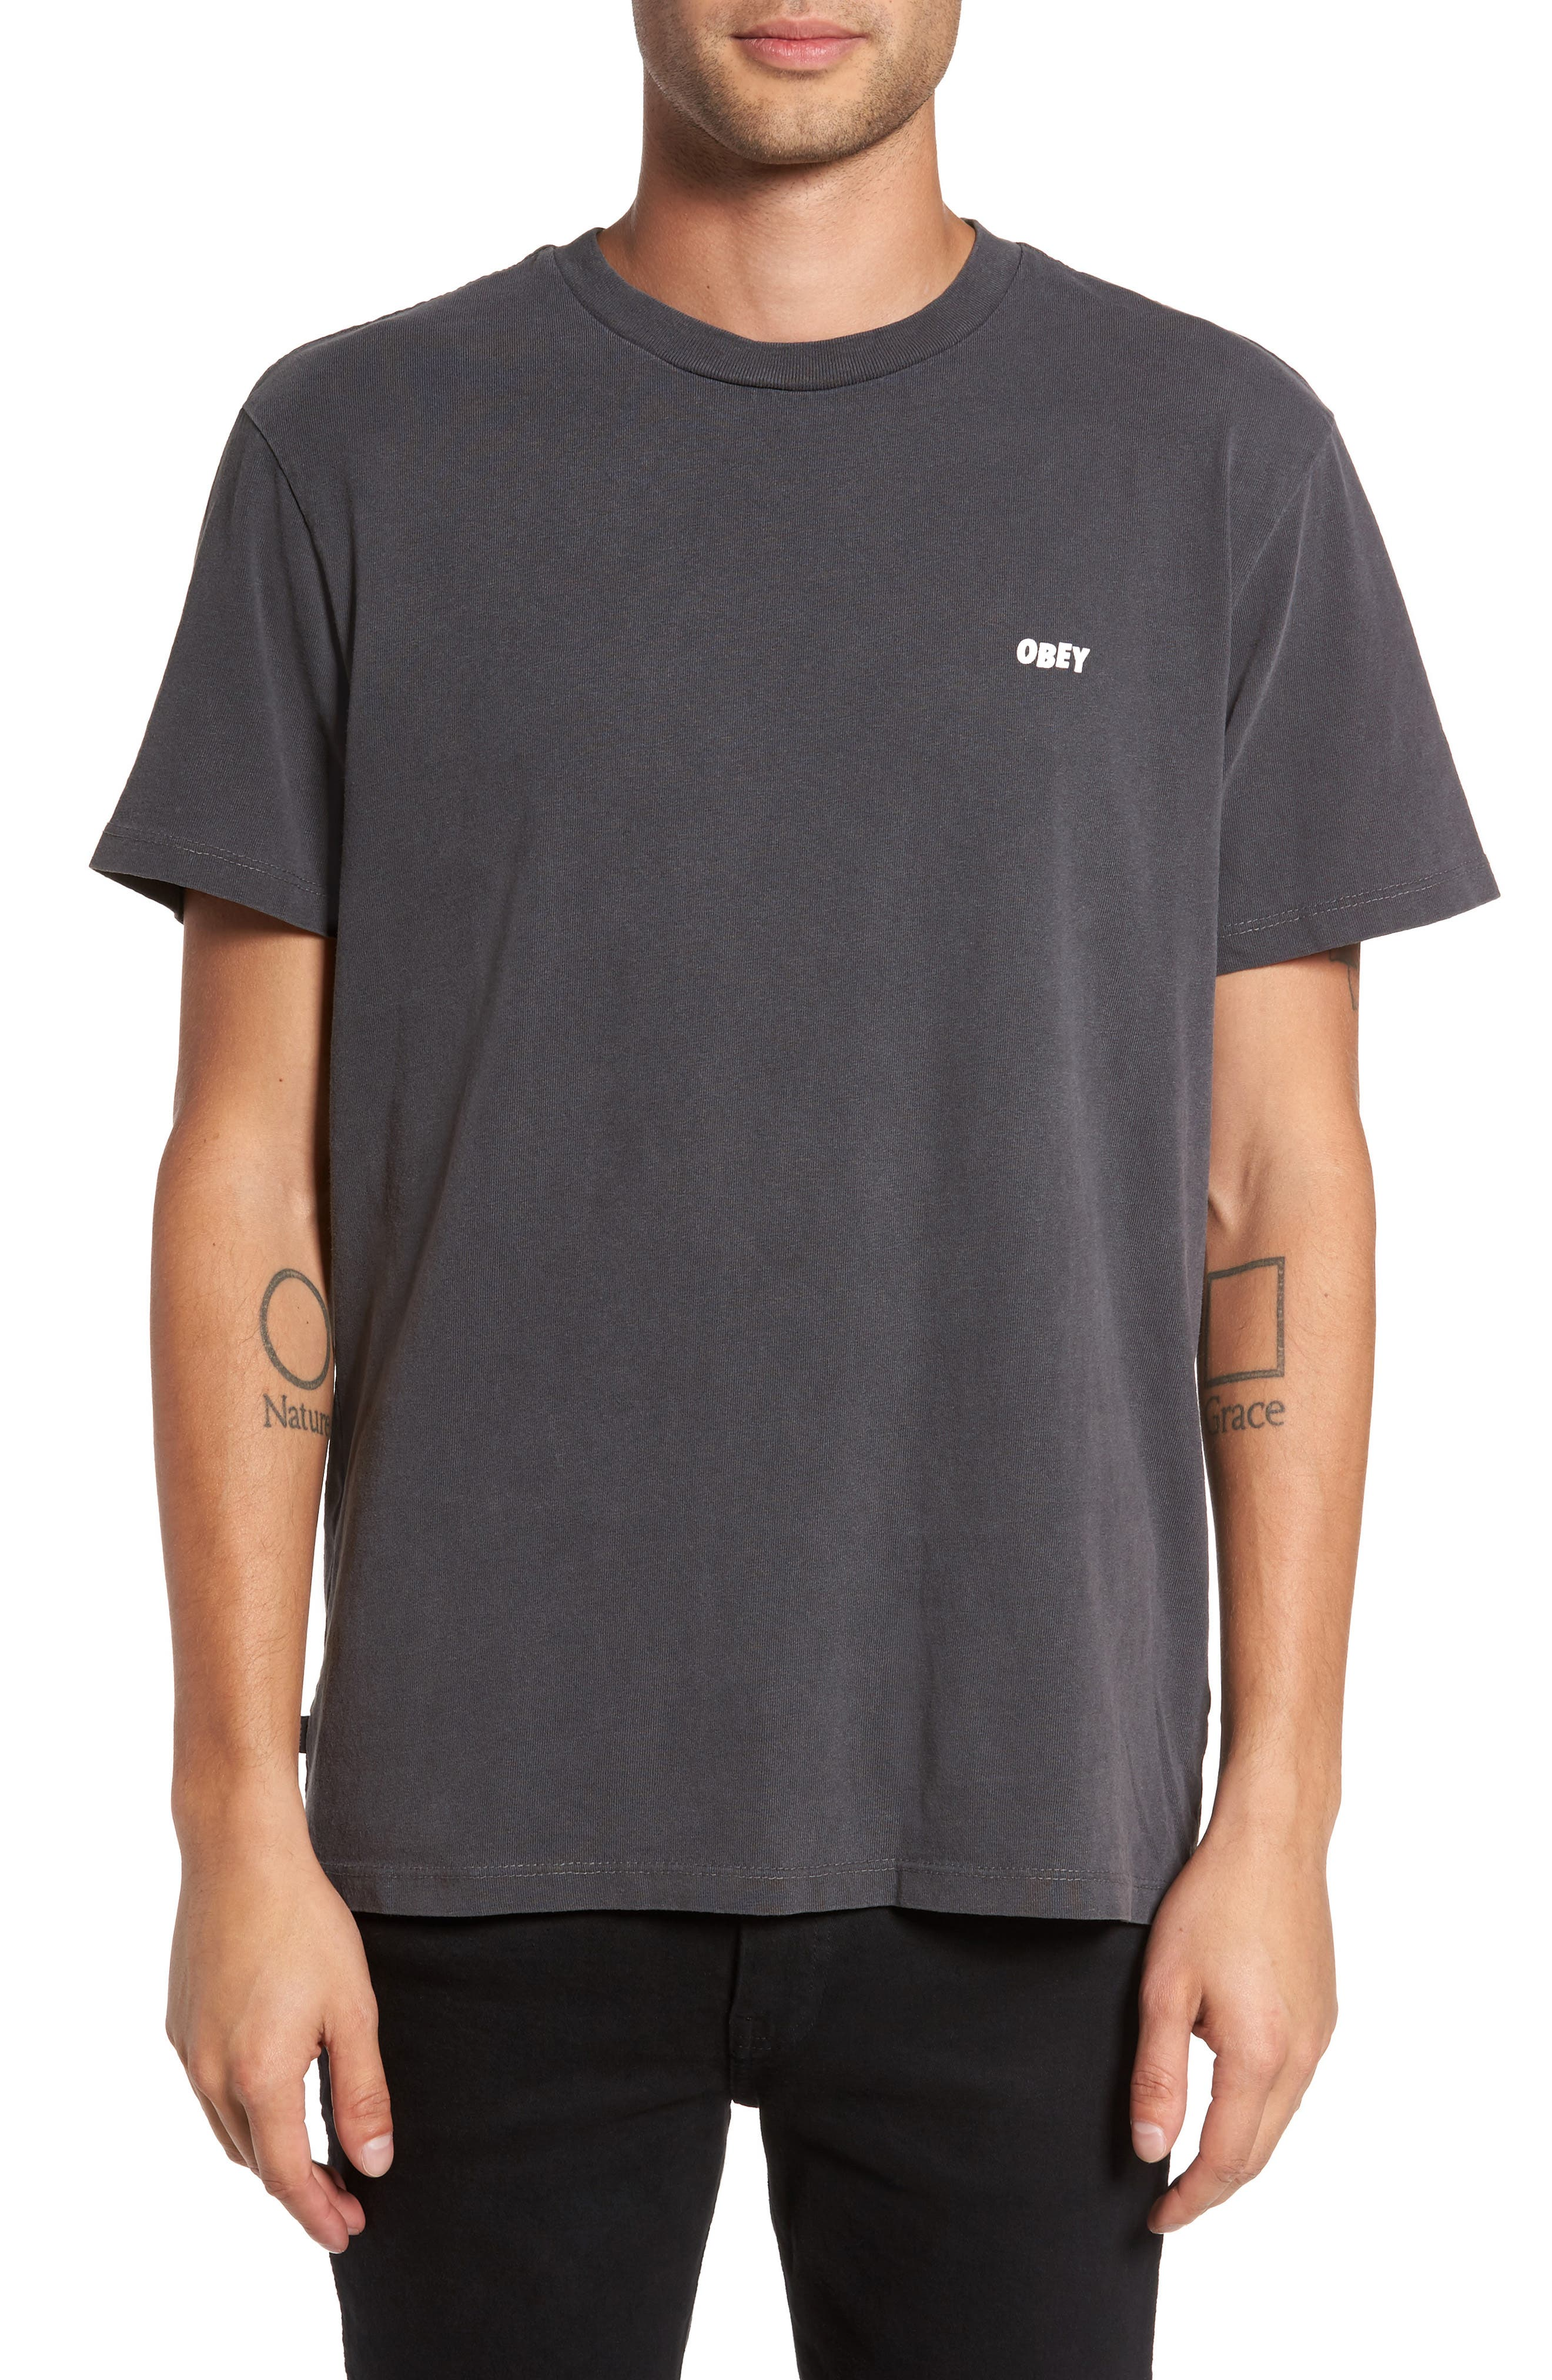 Eyes Graphic T-Shirt,                         Main,                         color, Dusty Black